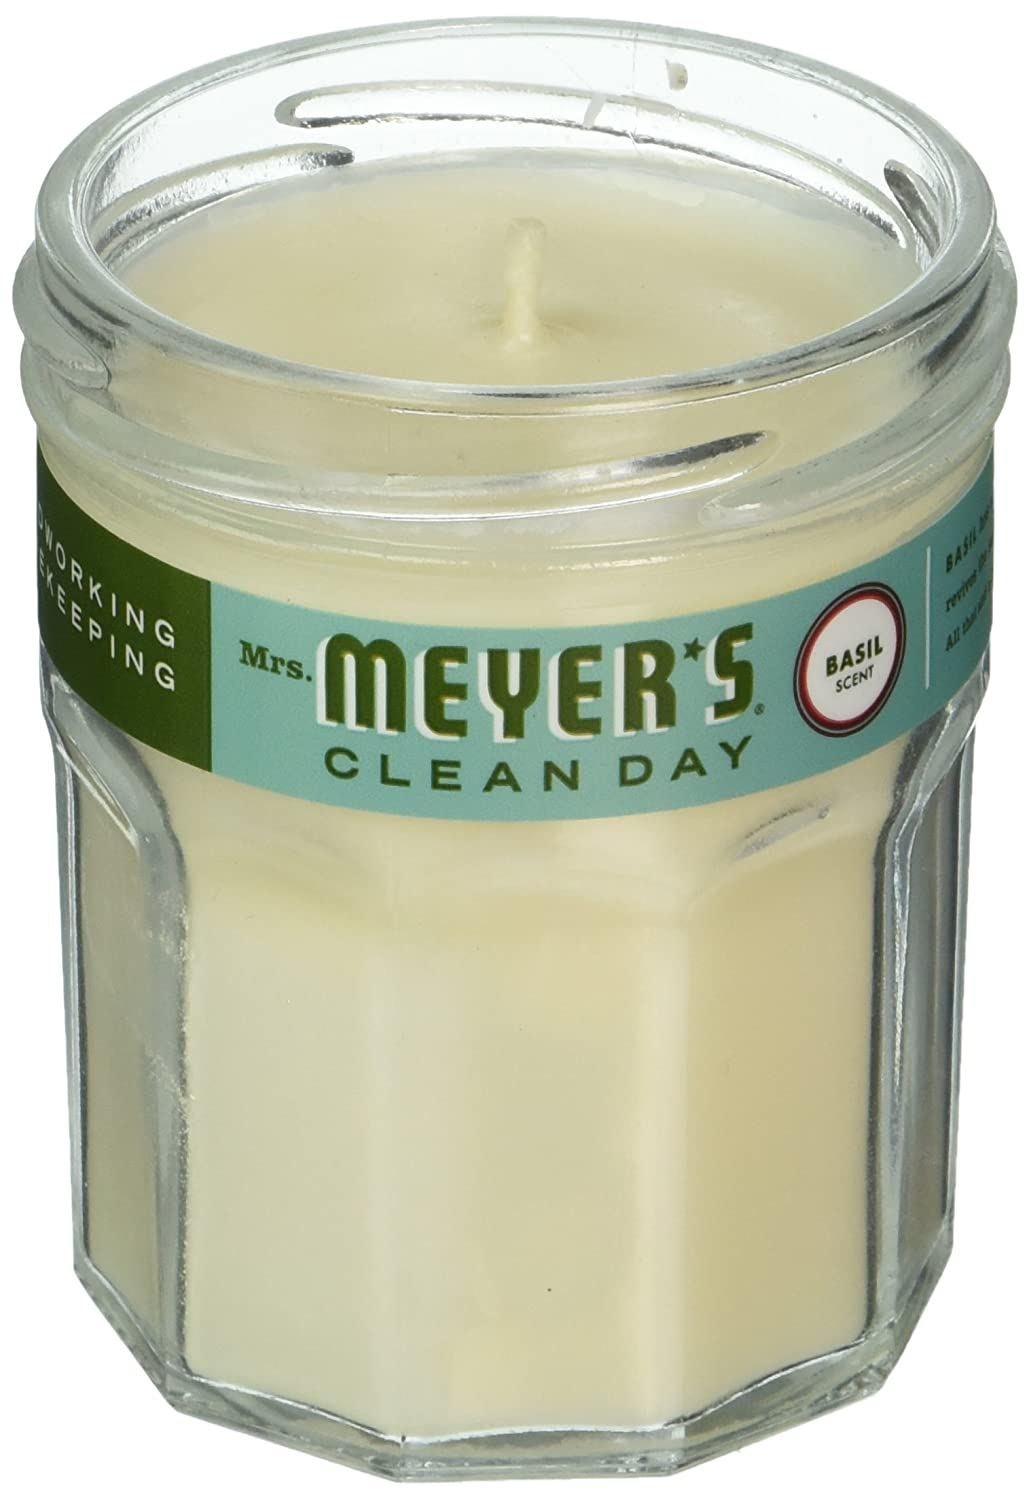 MRS MEYERS Clean Day Scented Soy Candle Basil, Small, 4.9 Ounce SC JOHNSON TRTAZ11A